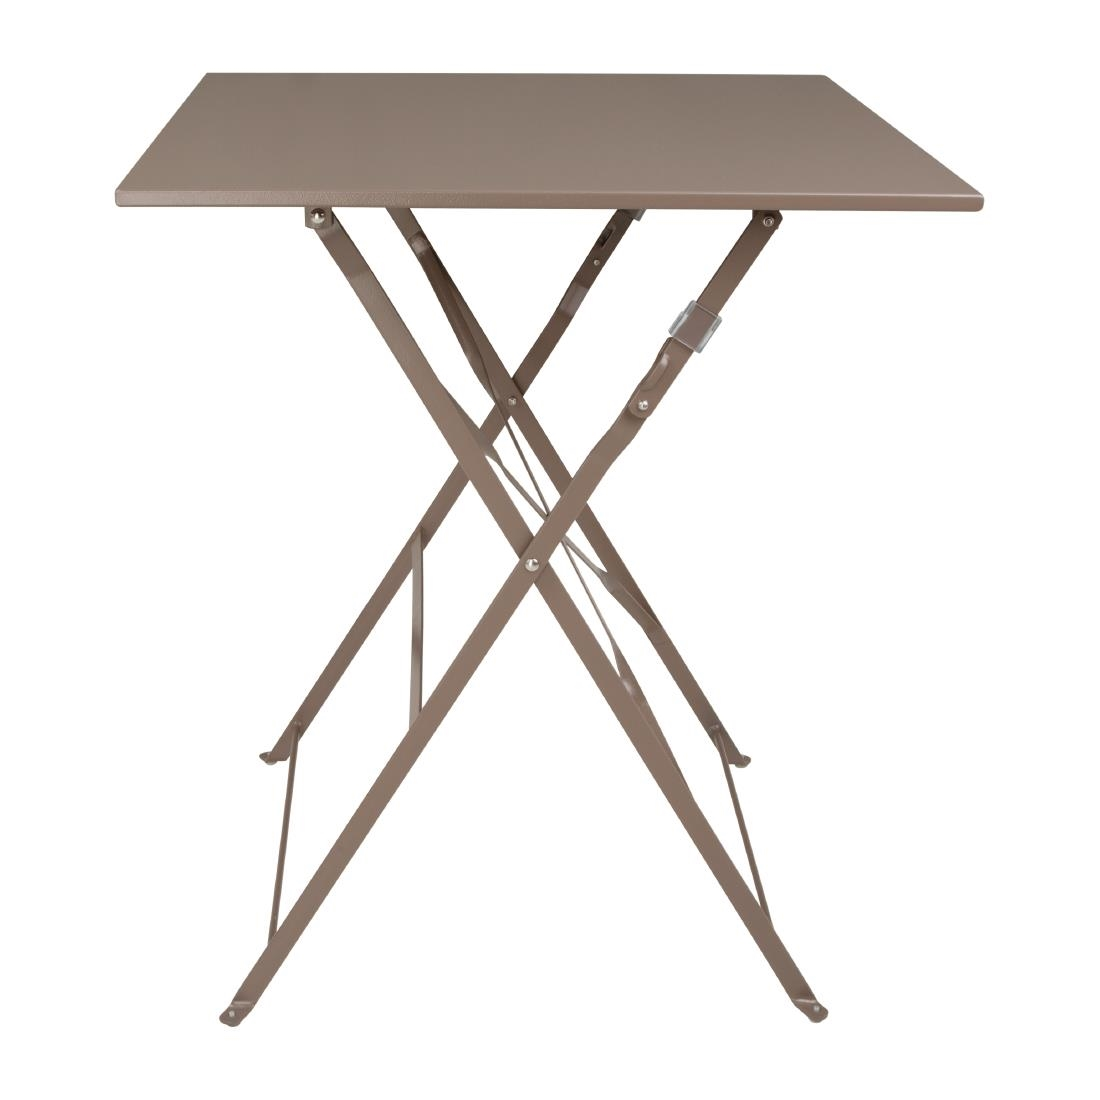 Steel Folding Table Square - Coffee